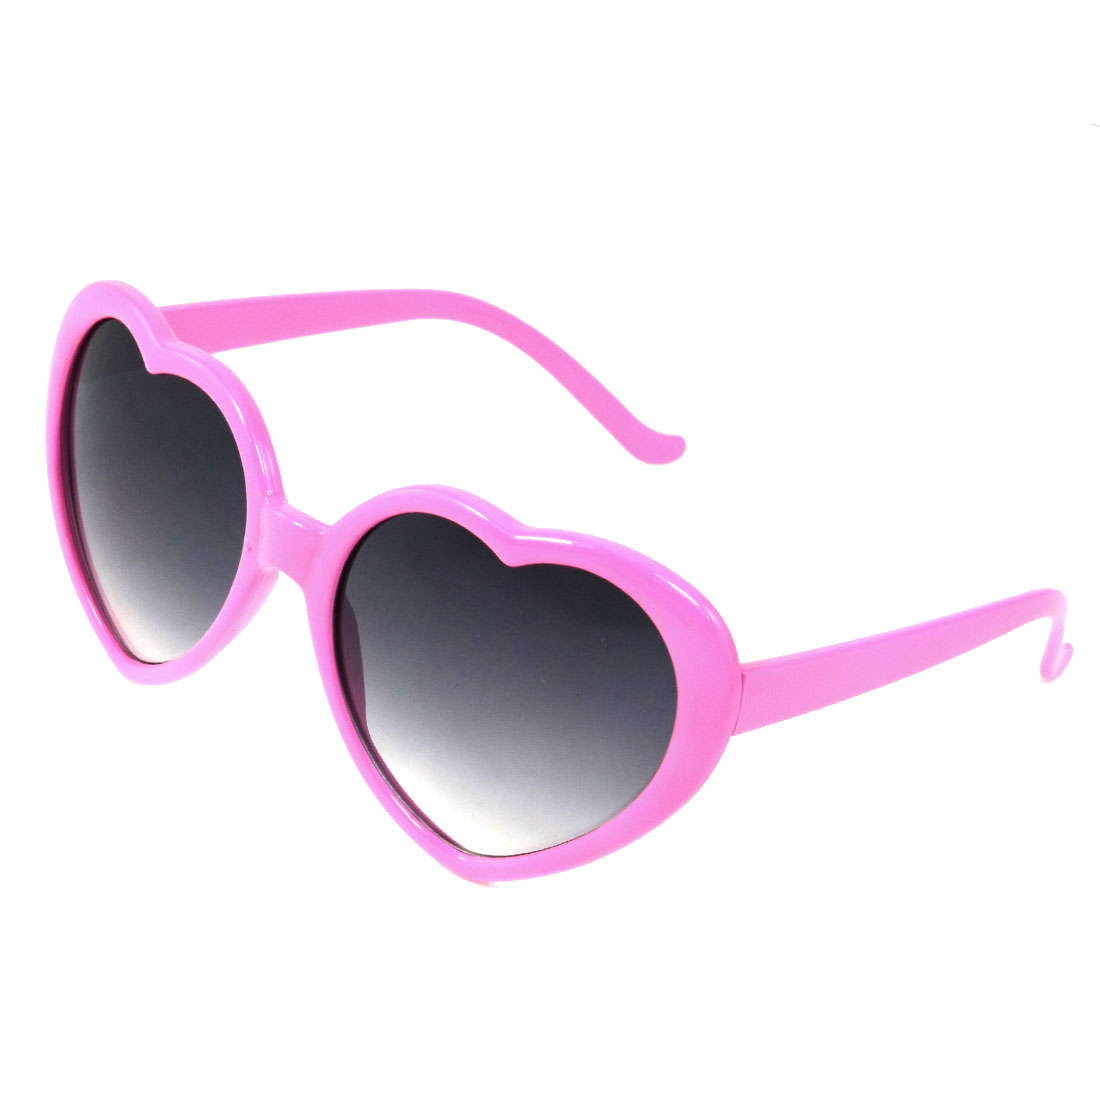 Gray Lens Plastic Pink Full Frame Single Bridge Sunglasses for Child